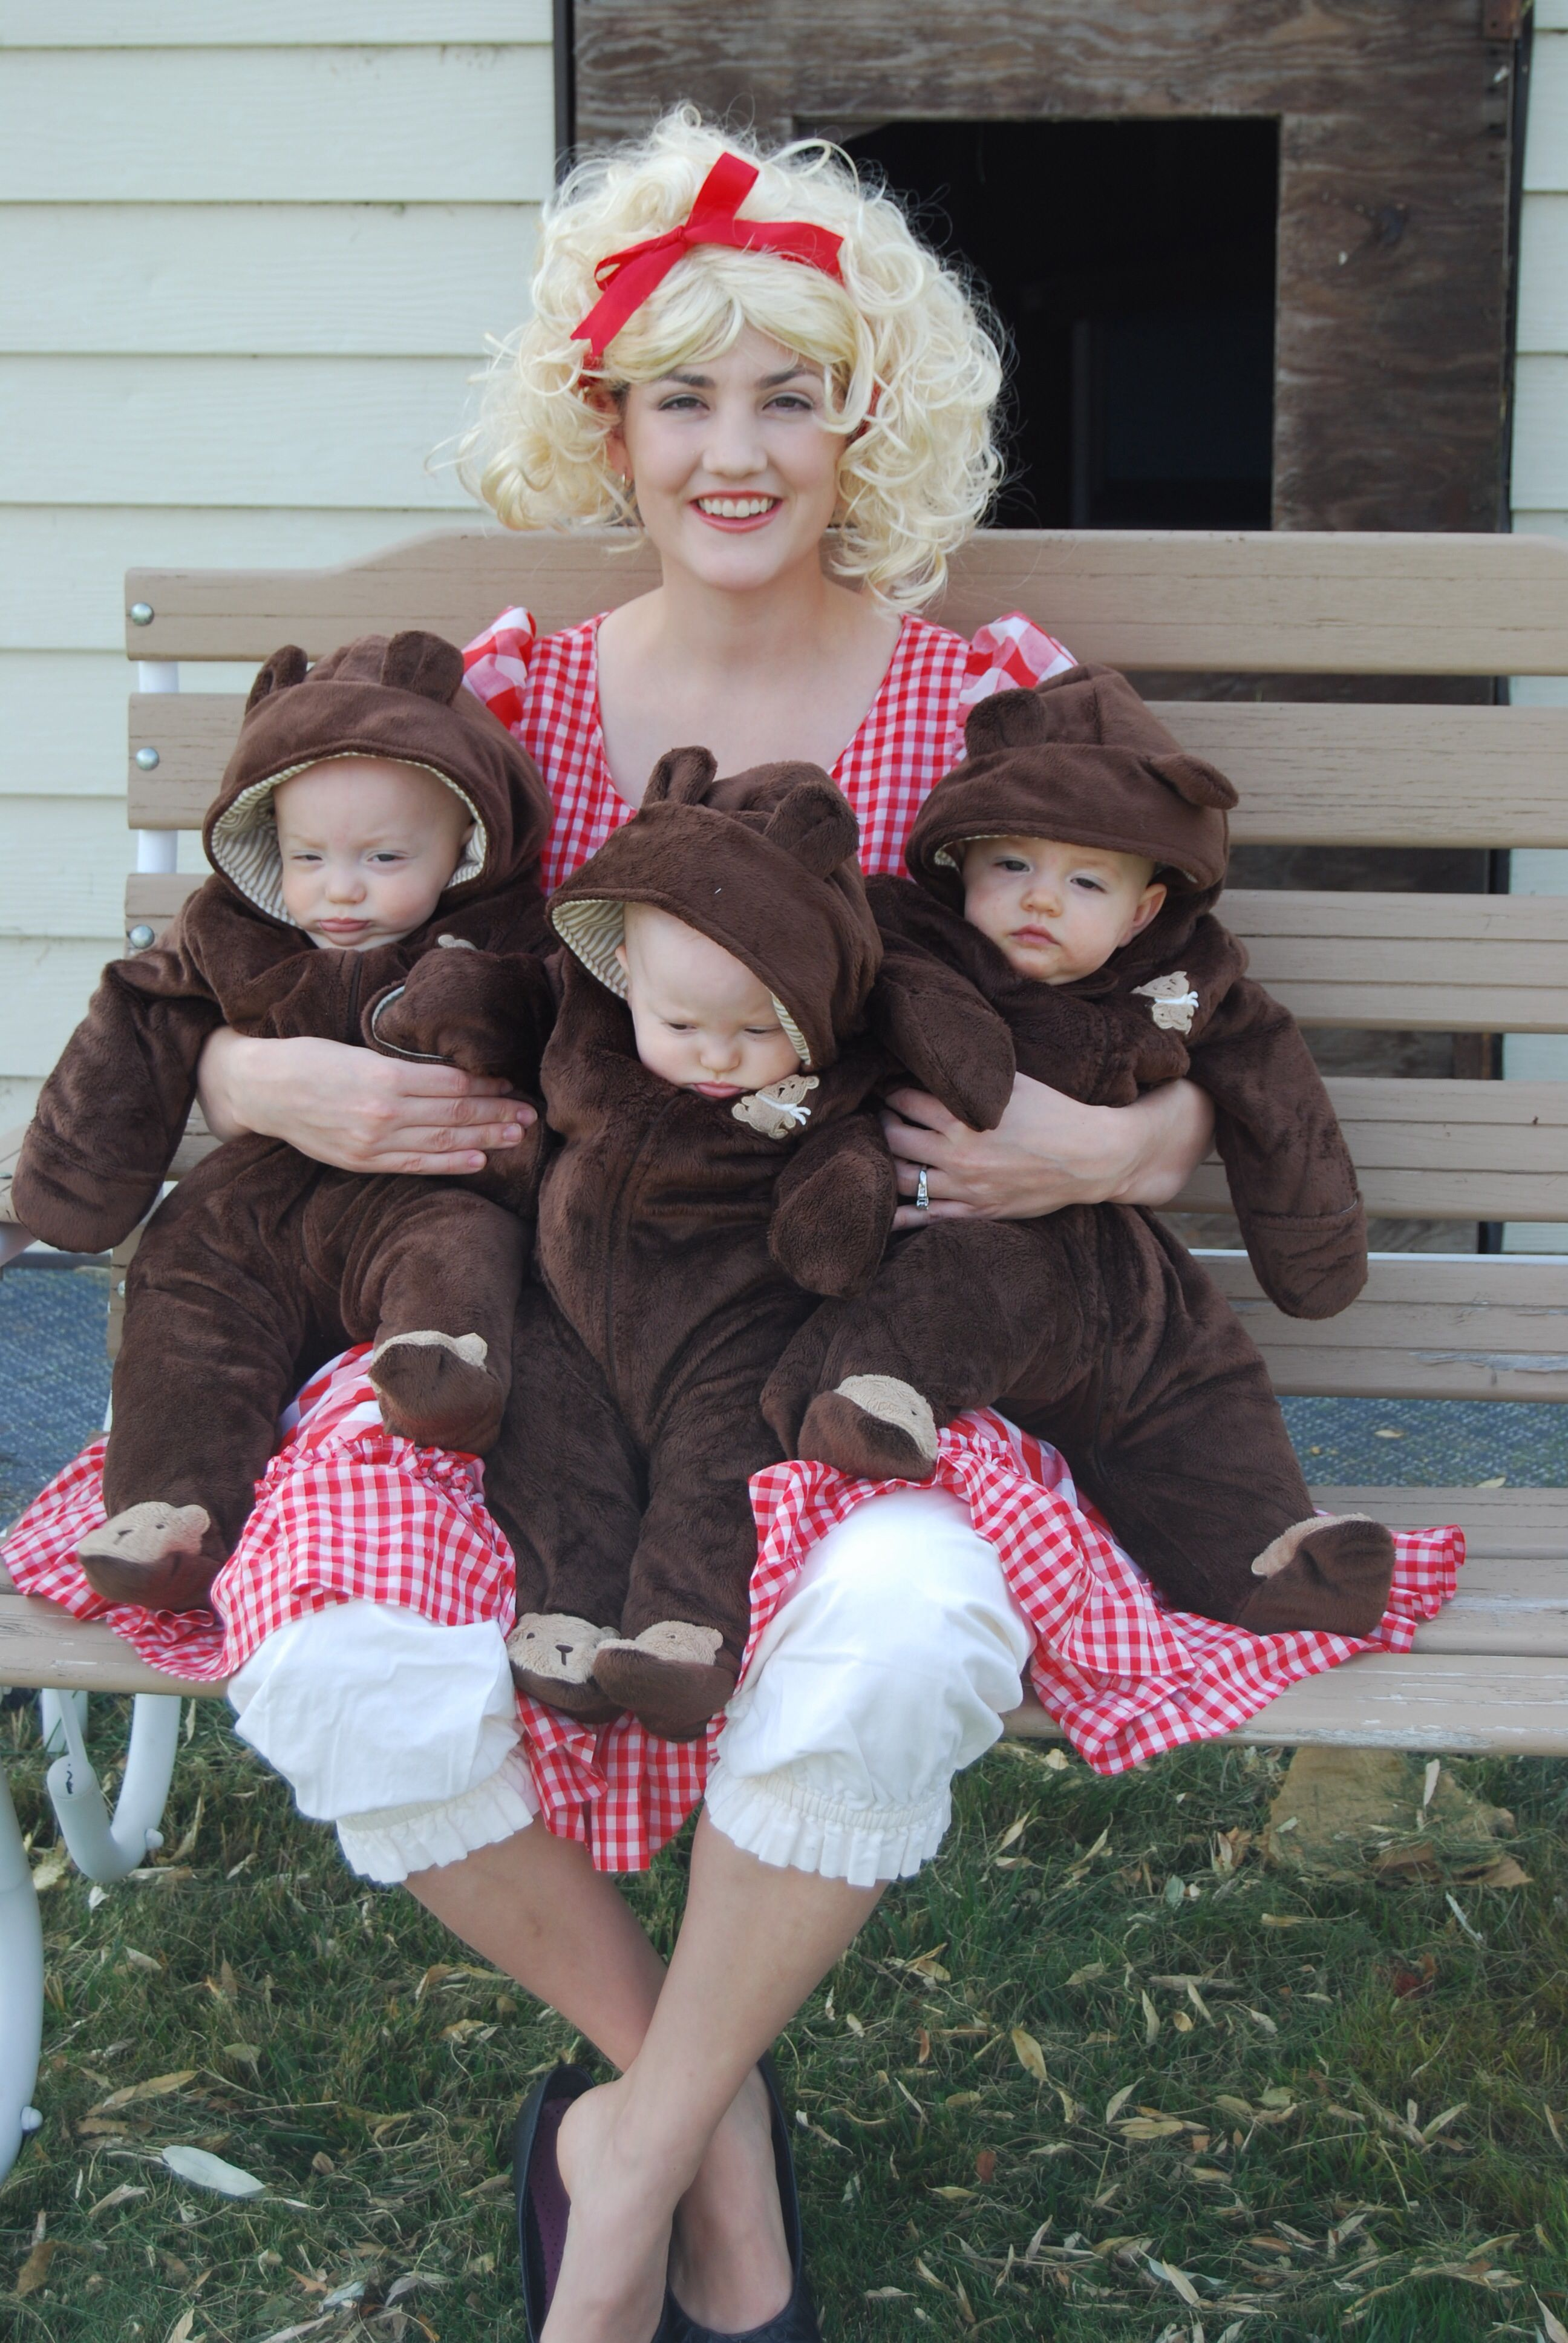 e902375f546 Halloween costume idea for triplets | Stuff I made.. | Baby ...